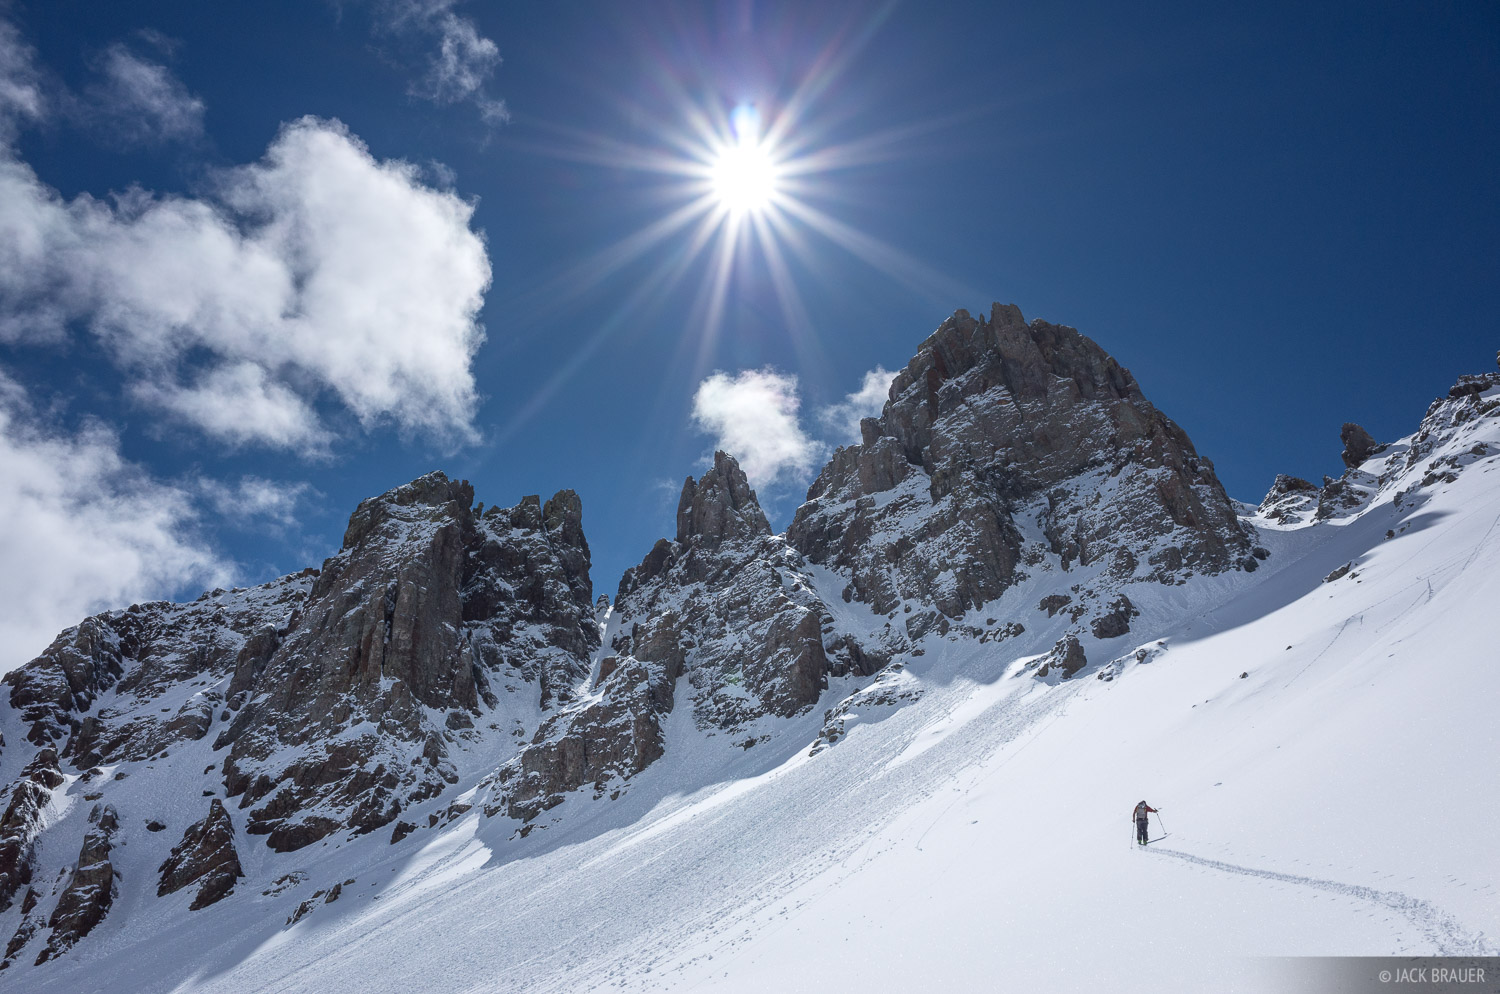 Colorado,Ophir Pass,San Juan Mountains,skiing, photo